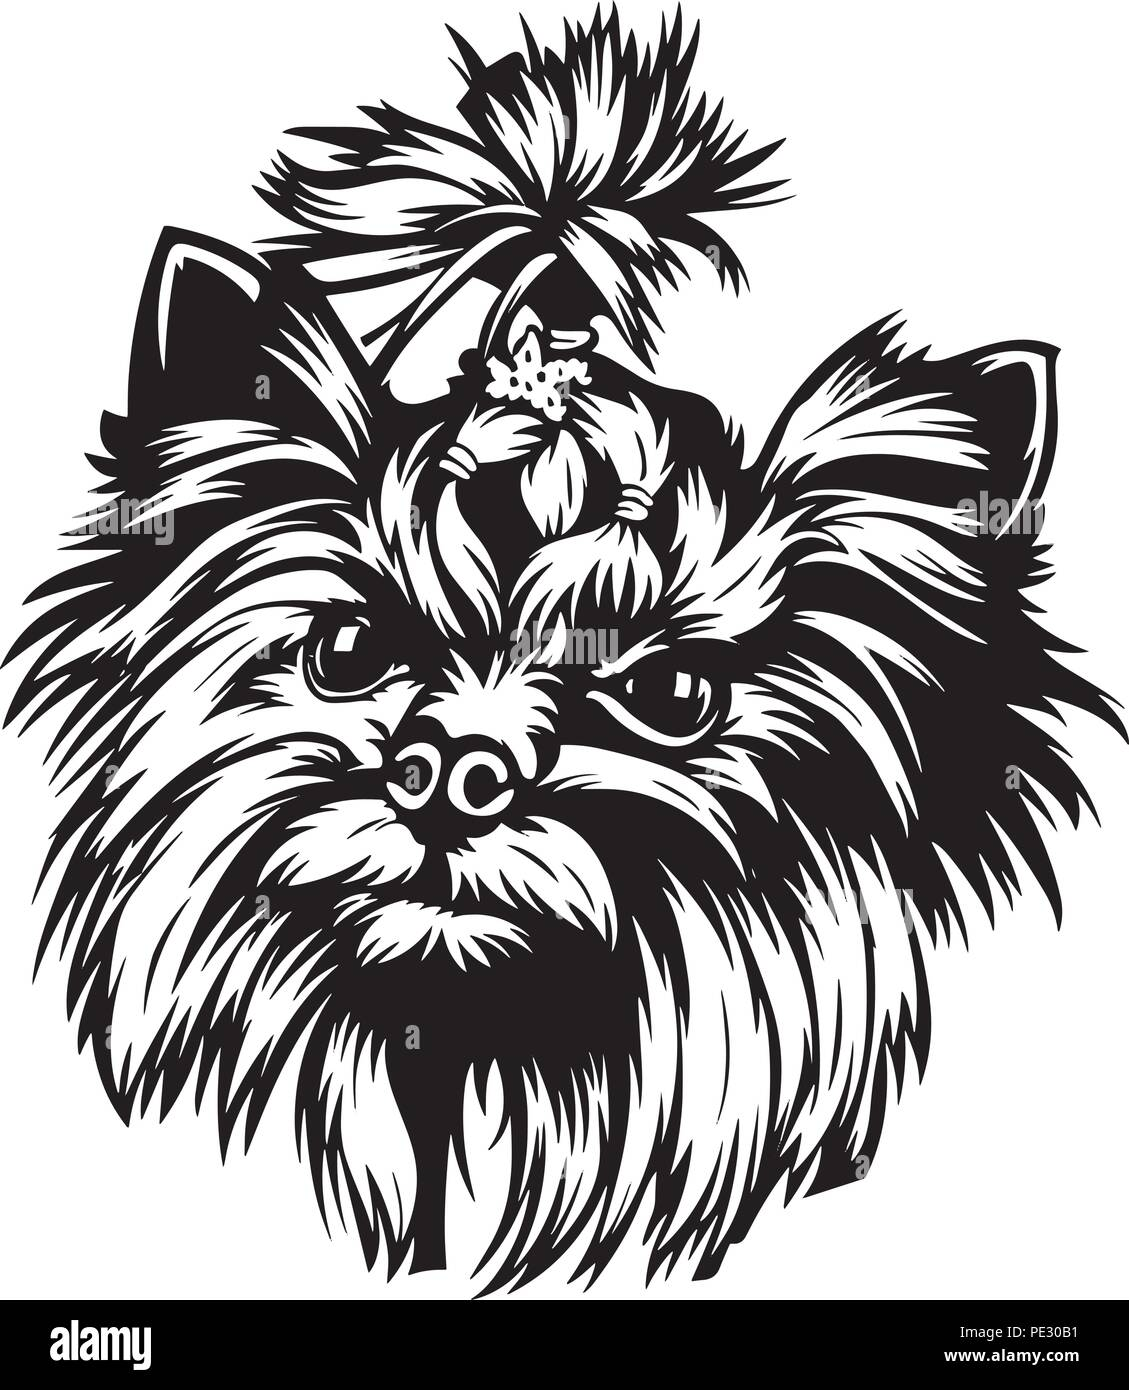 Yorkshire Terrier Yorkie Dog Breed Pet Puppy Isolated Head Face Stock Vector